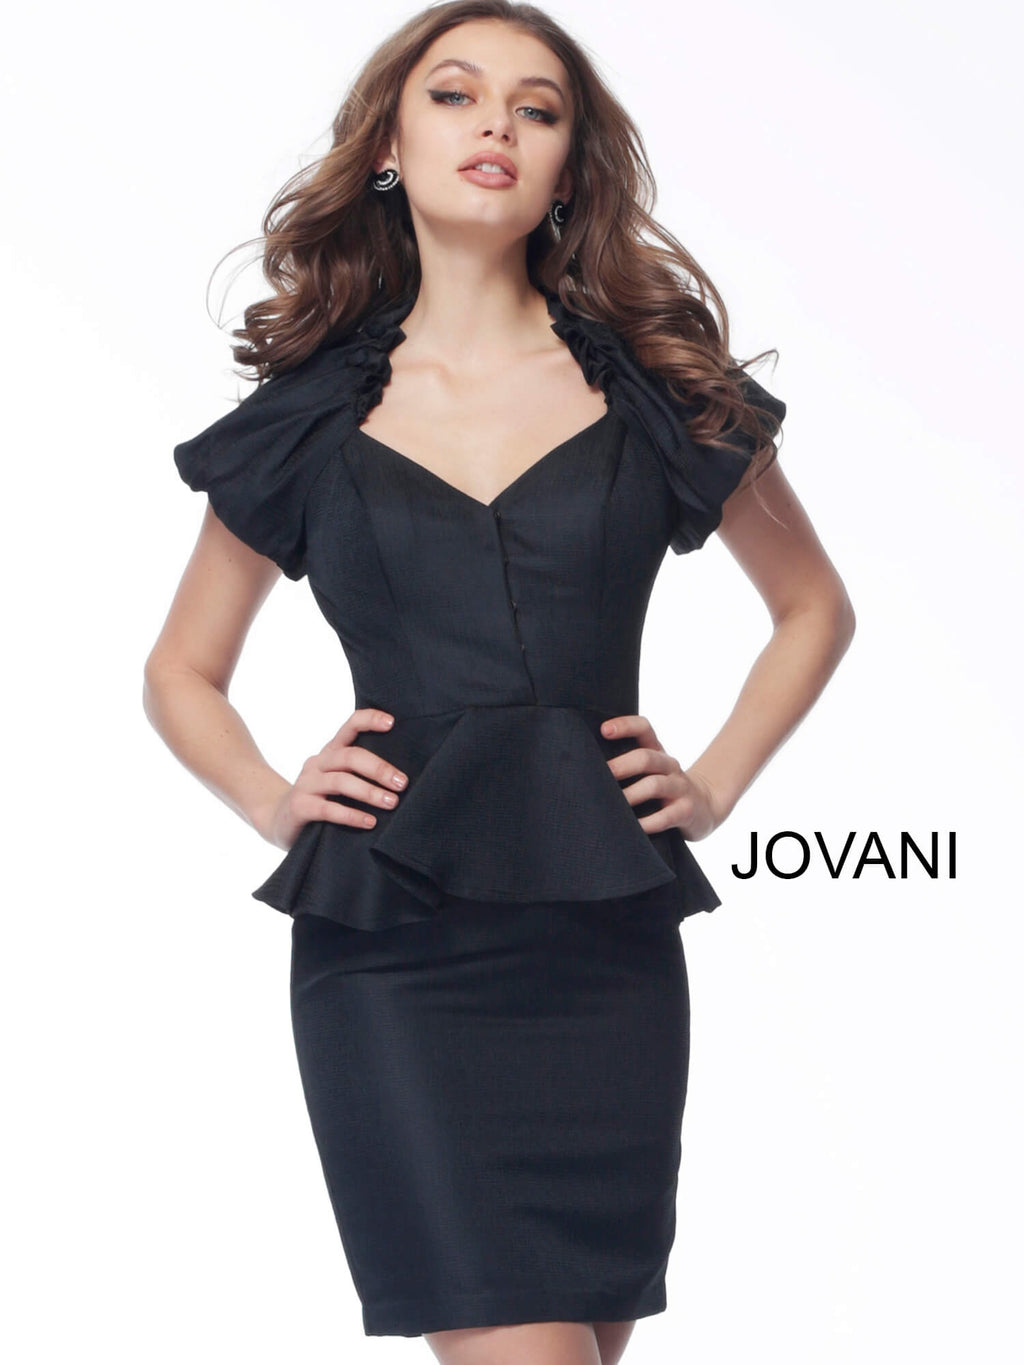 JOVANI 171598 Peplum V-Neck Cocktail Dress